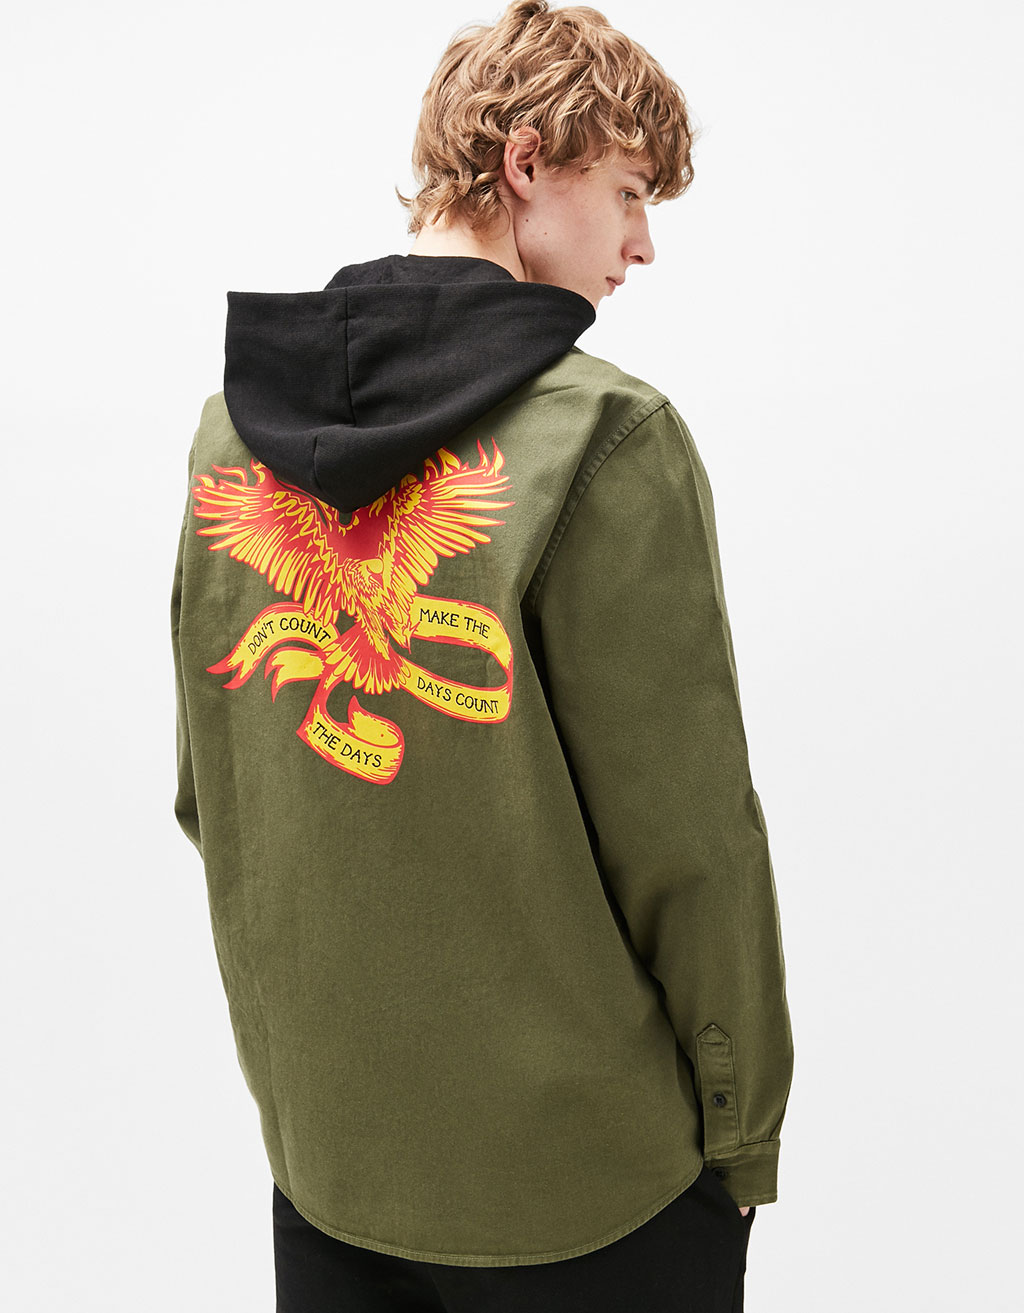 Hooded overshirt with printed back